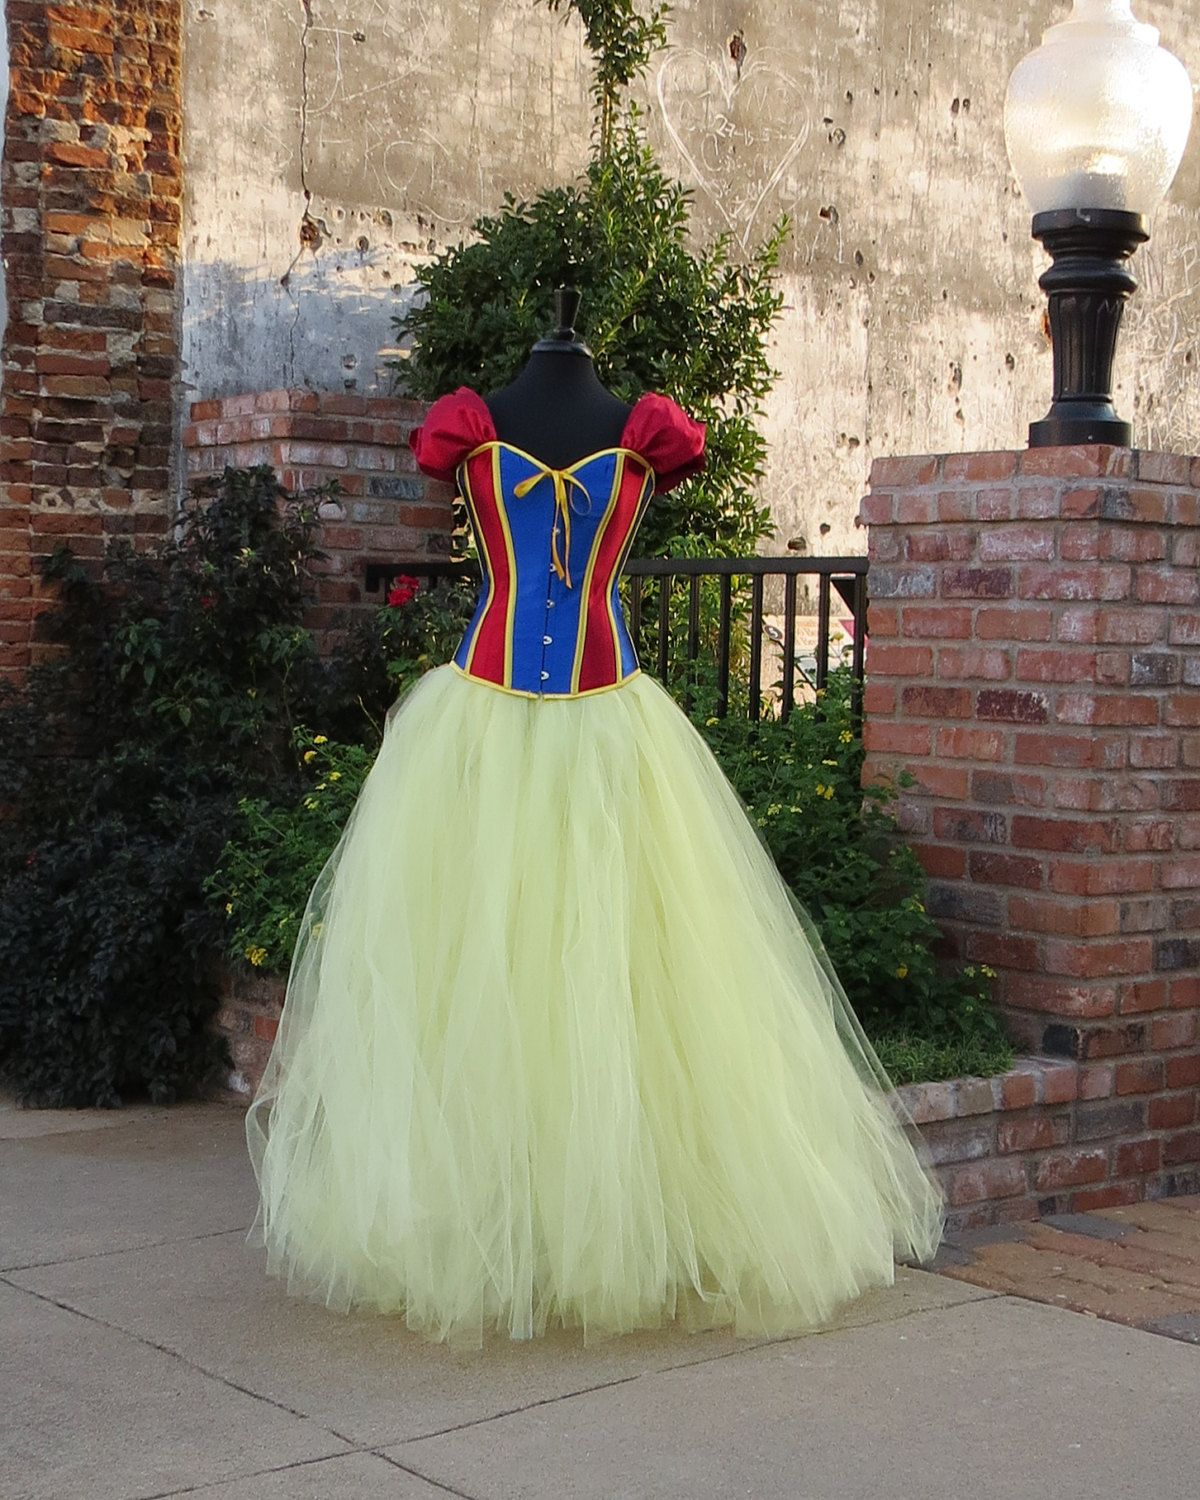 Snow white apron etsy - Adult Snow White Costume Skirt Beautiful Tulle Skirt For Your Halloween Costume Cosplay Fairytale